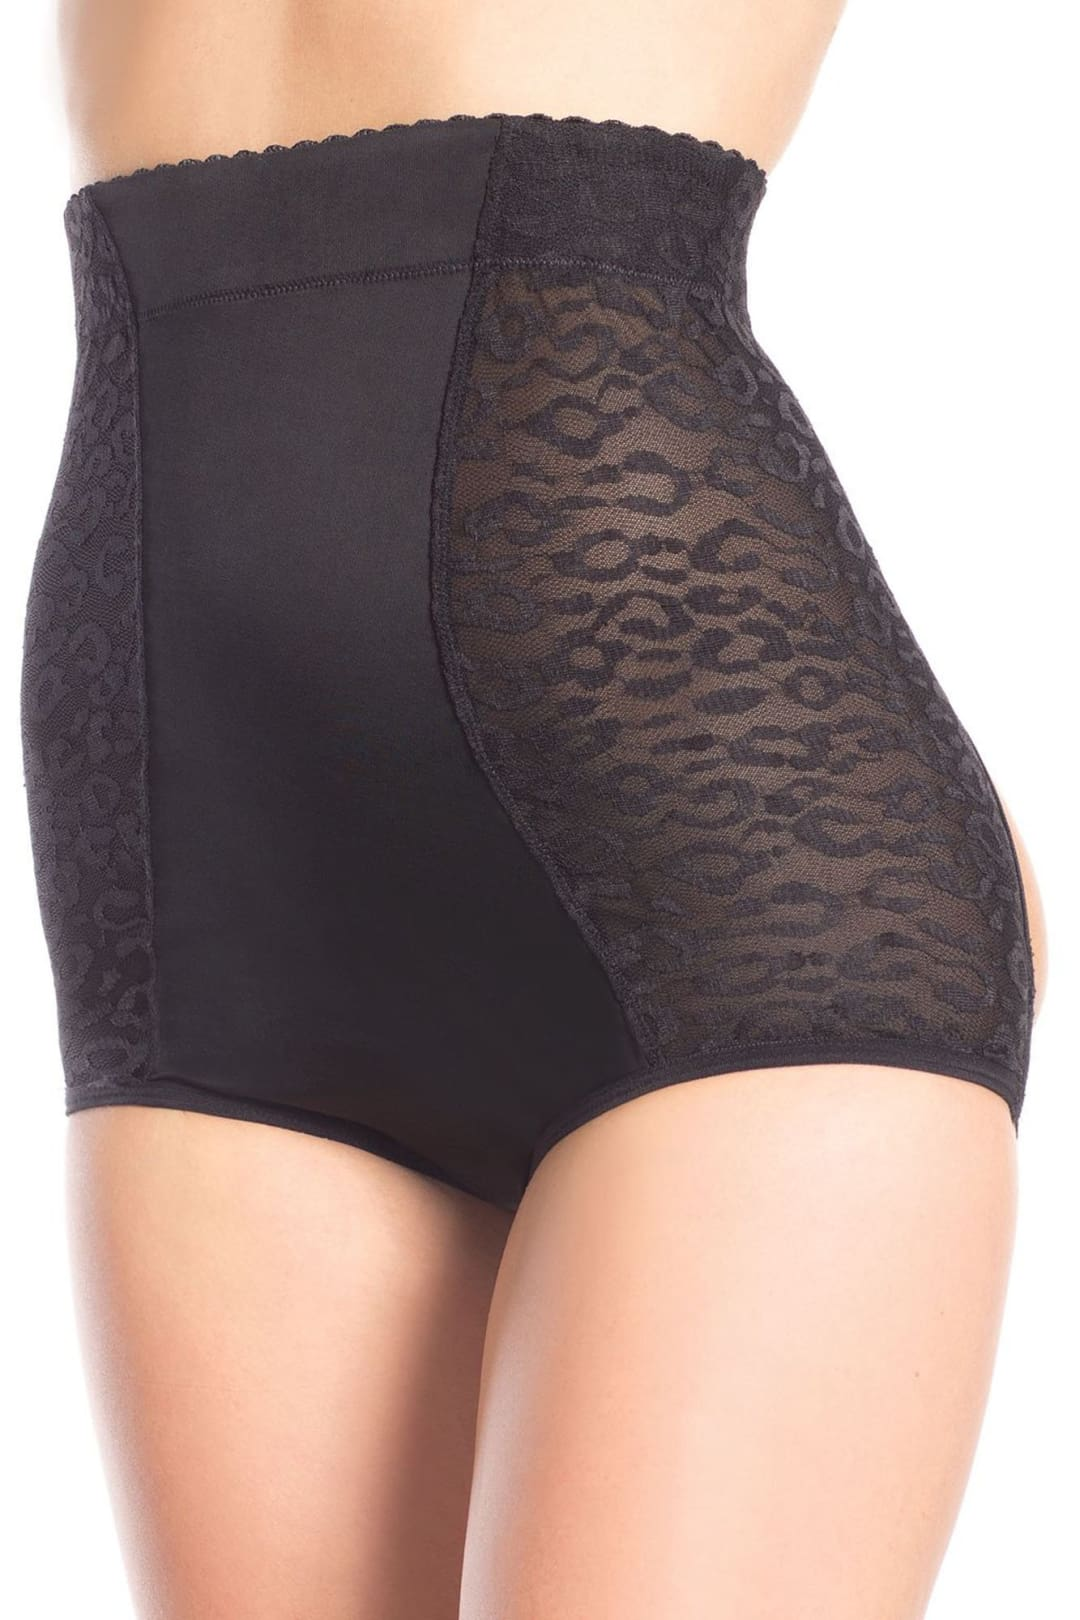 High Waist Butt Lifter - Accessories